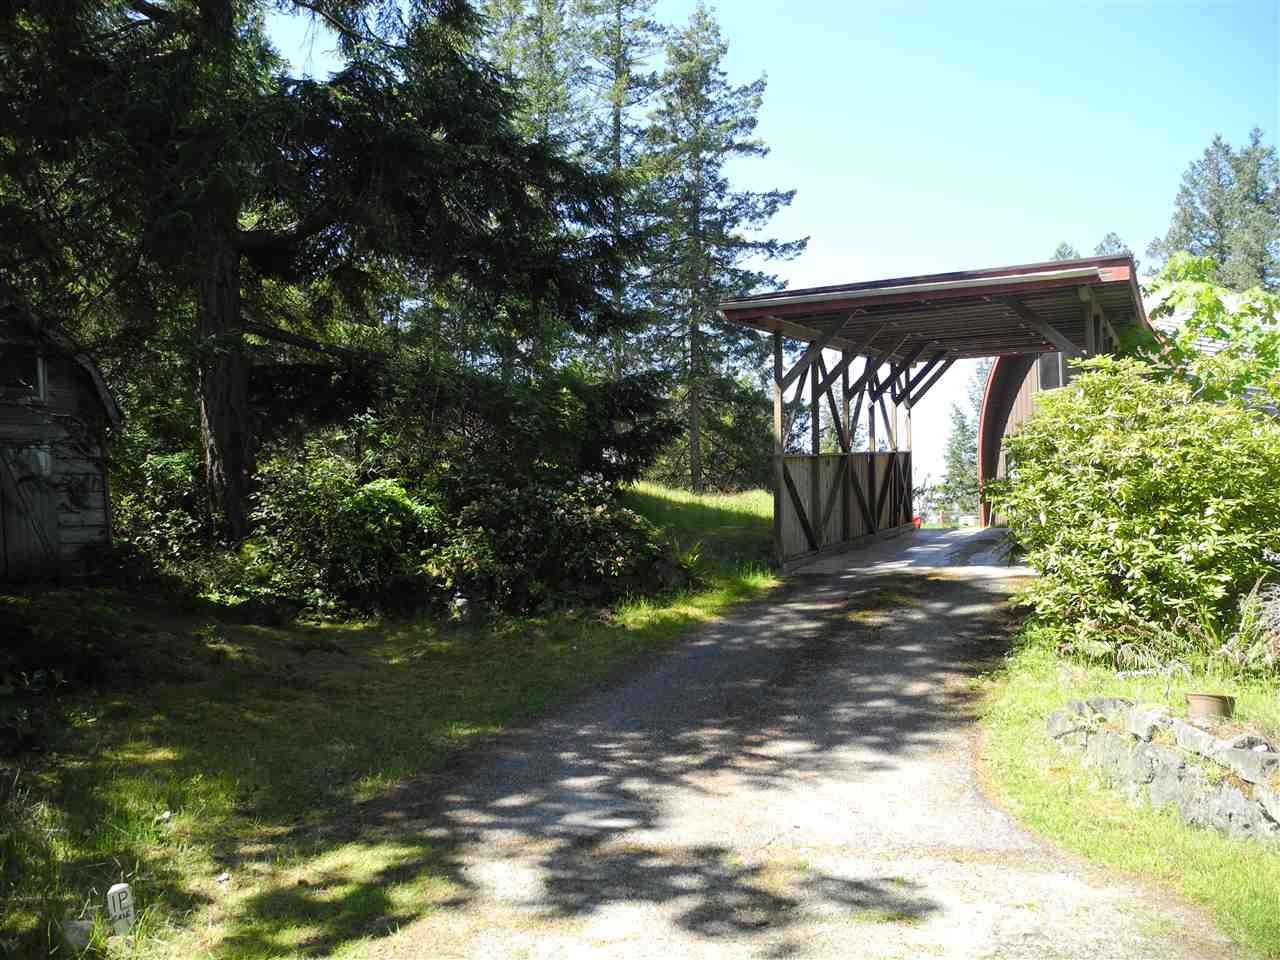 Photo 12: 4436 MCLINTOCK Road in Pender Harbour: Pender Harbour Egmont House for sale (Sunshine Coast)  : MLS(r) # R2068891